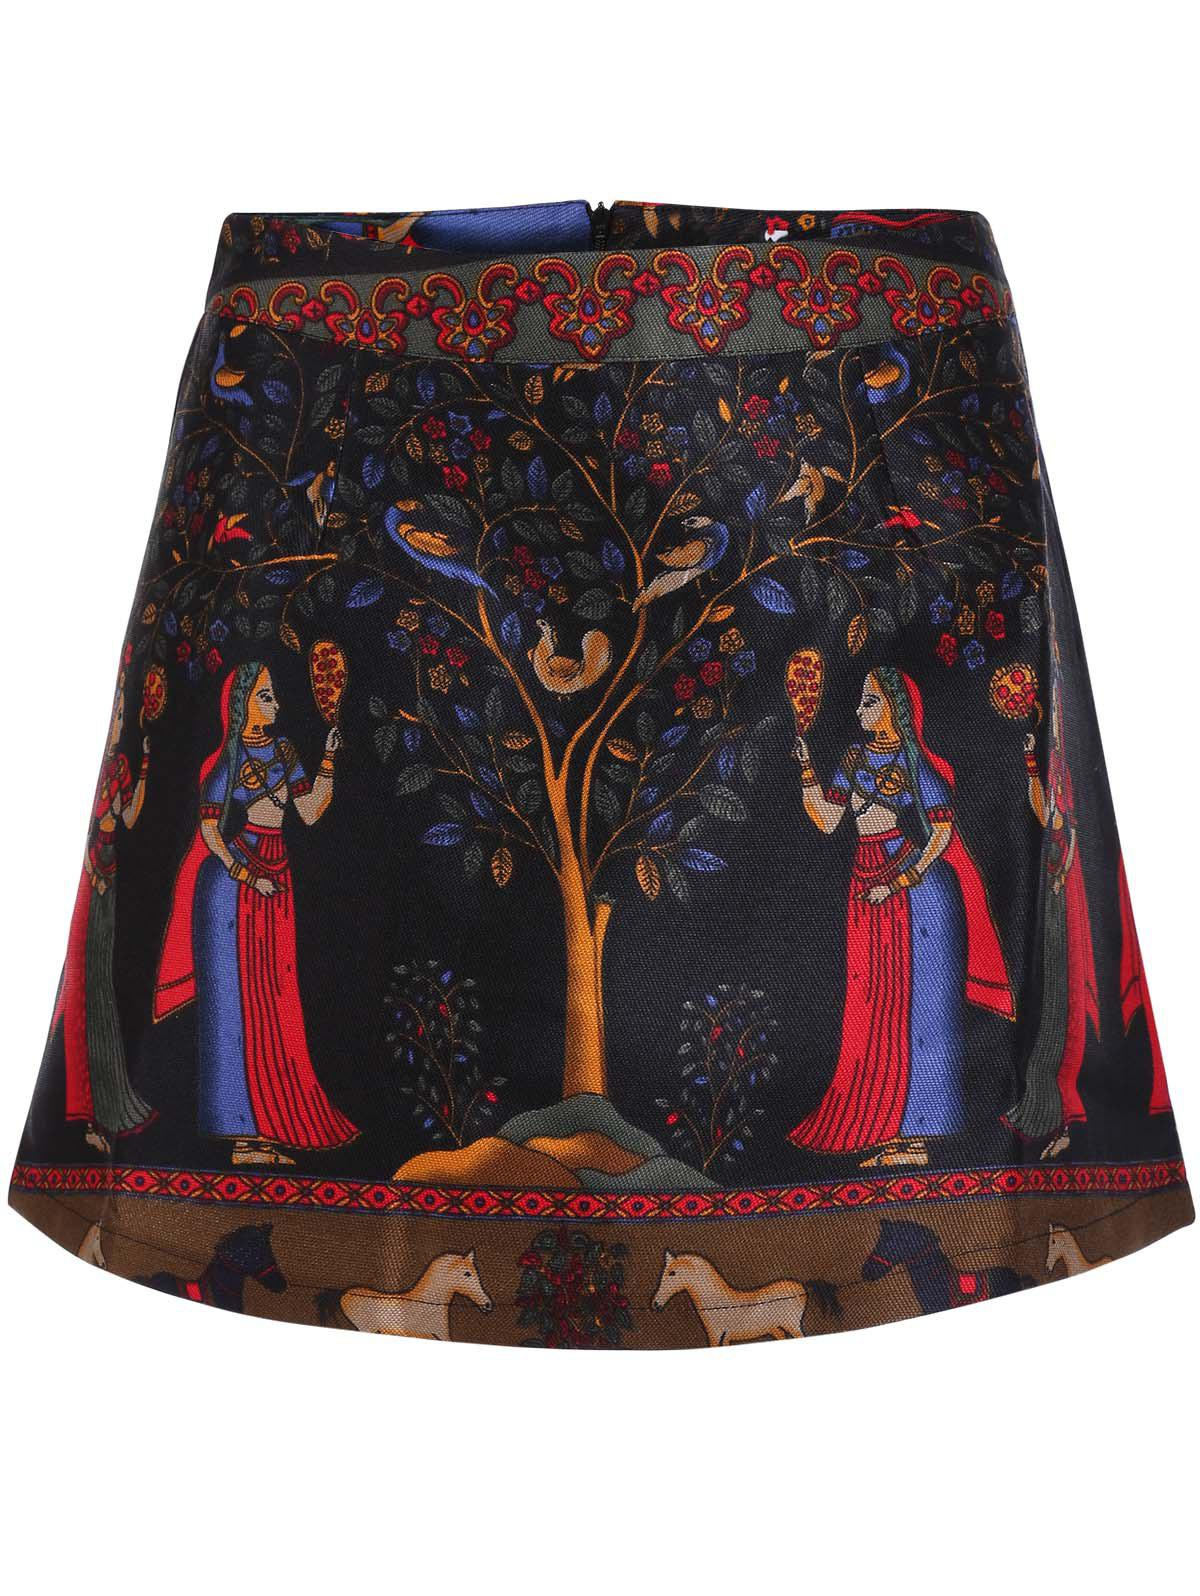 Stylish Ethnic Print High Skirt For Women - COLORMIX S